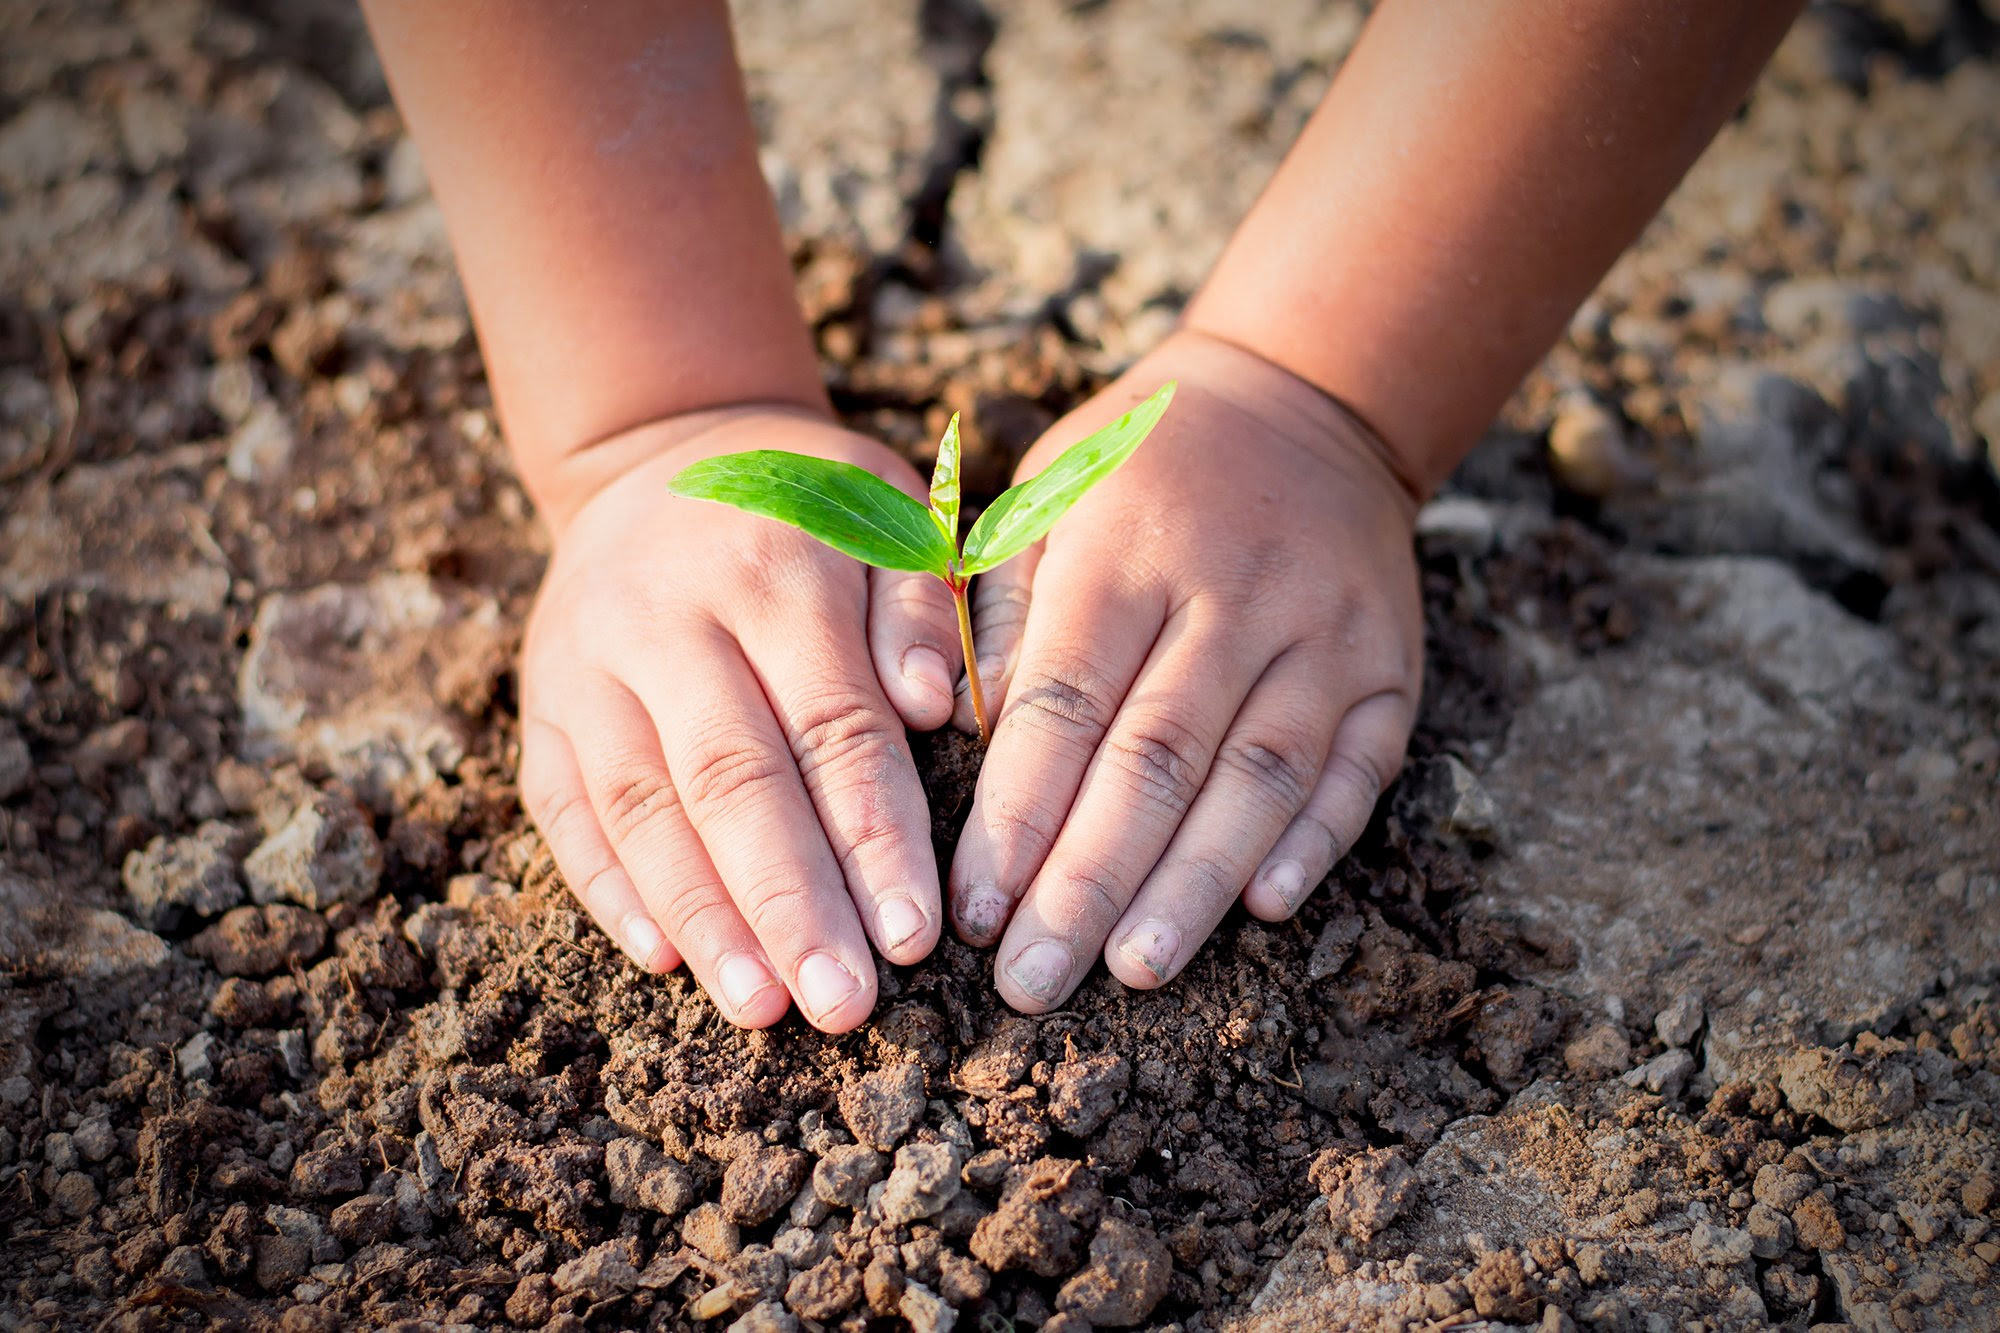 Why Is Gardening Healthy For Kids?